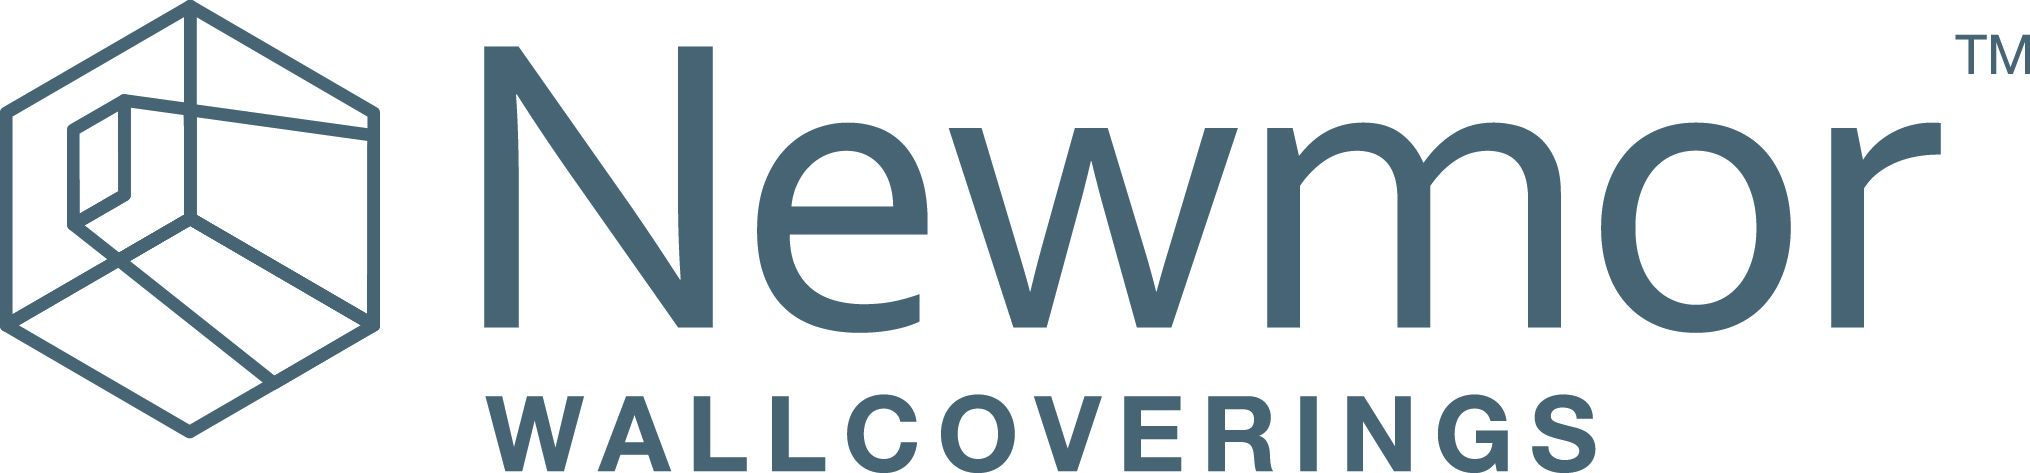 NewmorWallcoverings Logo